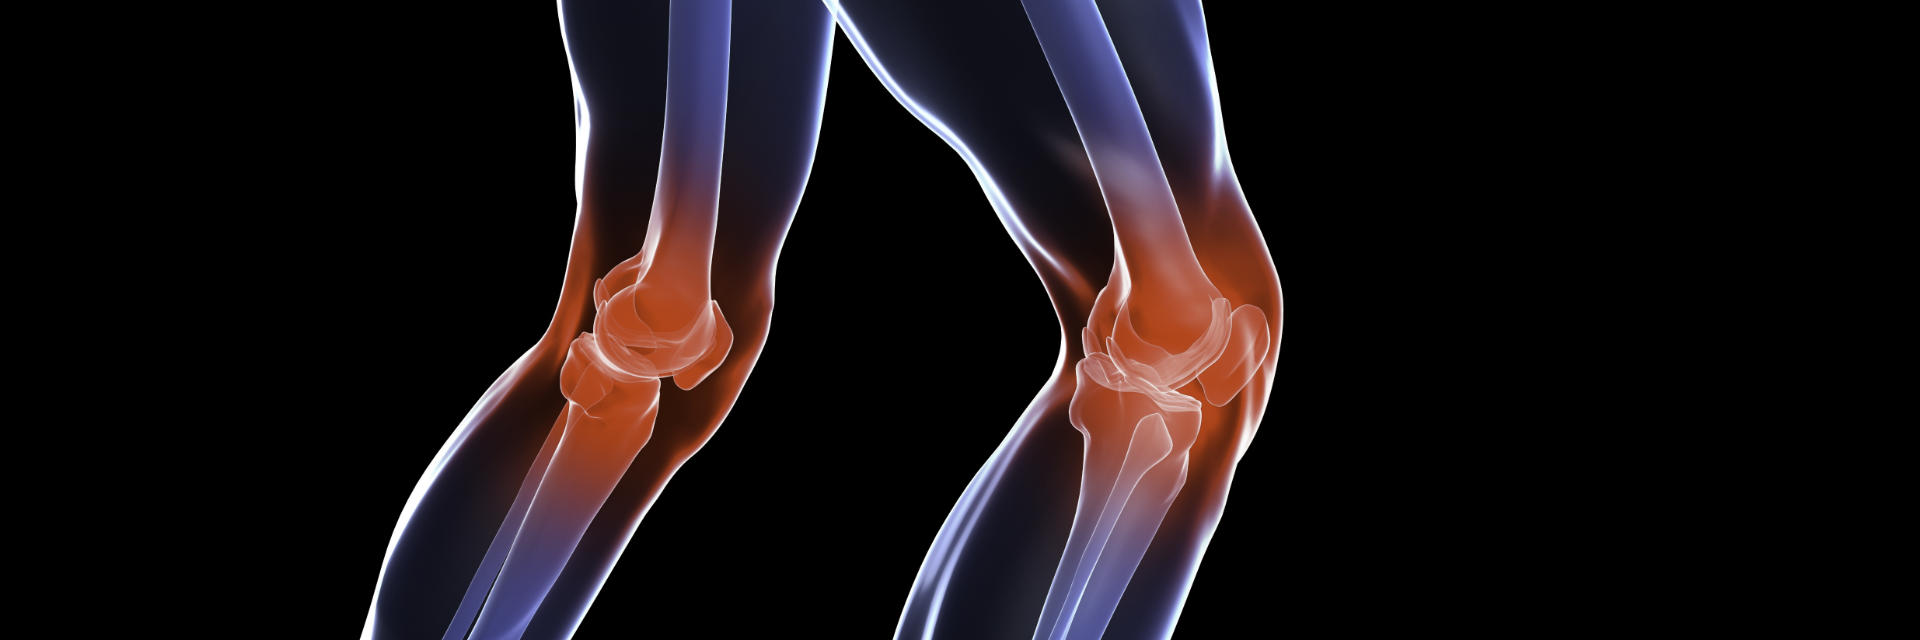 Damaged knee joints requiring total knee replacement surgery.